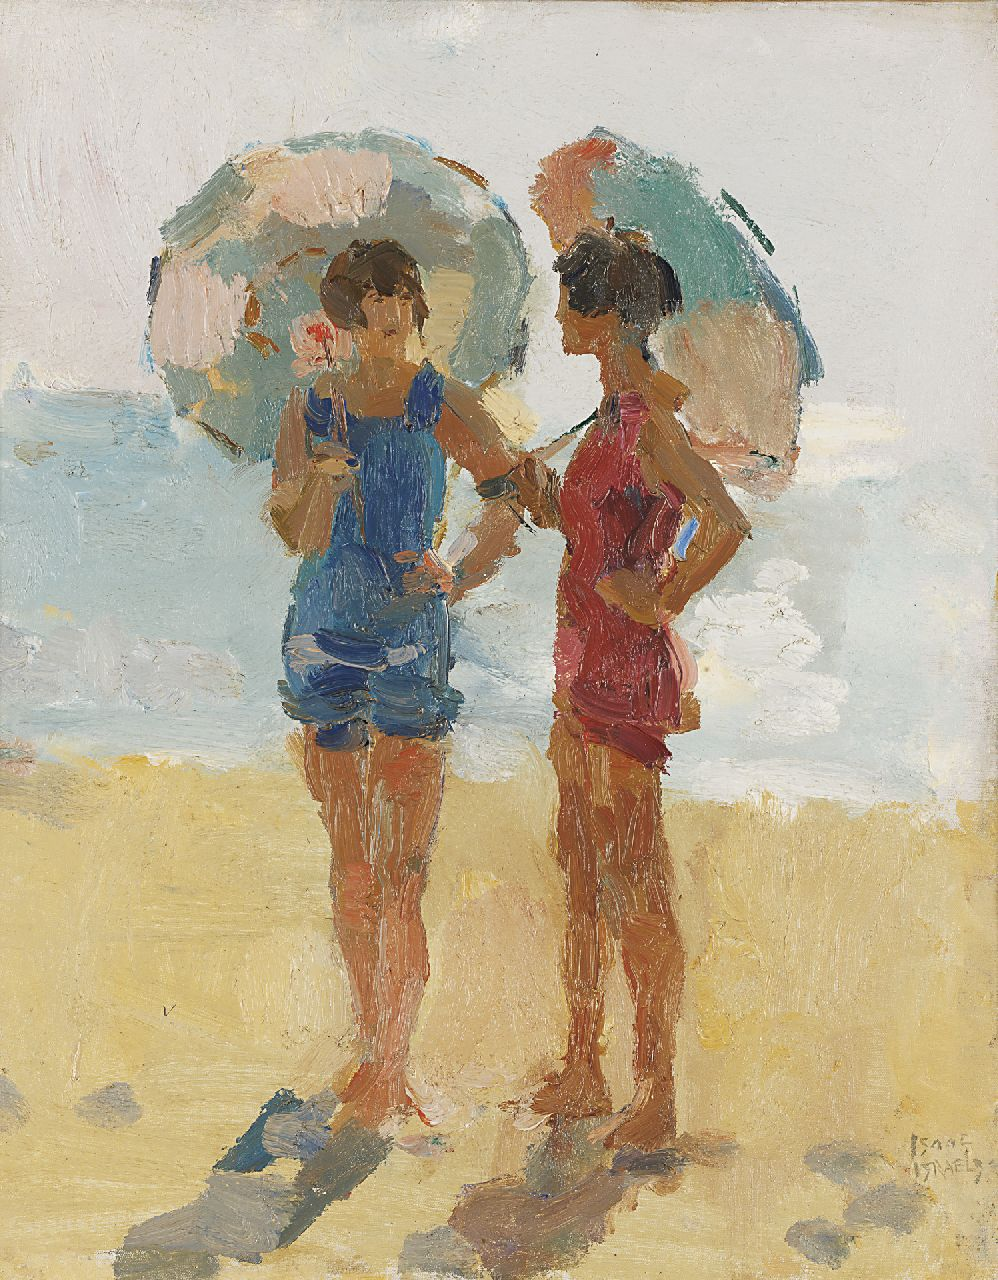 Israels I.L.  | 'Isaac' Lazarus Israels, At the beach, Viareggio, oil on canvas 50.4 x 40.5 cm, signed l.r. and painted between 1923-1934